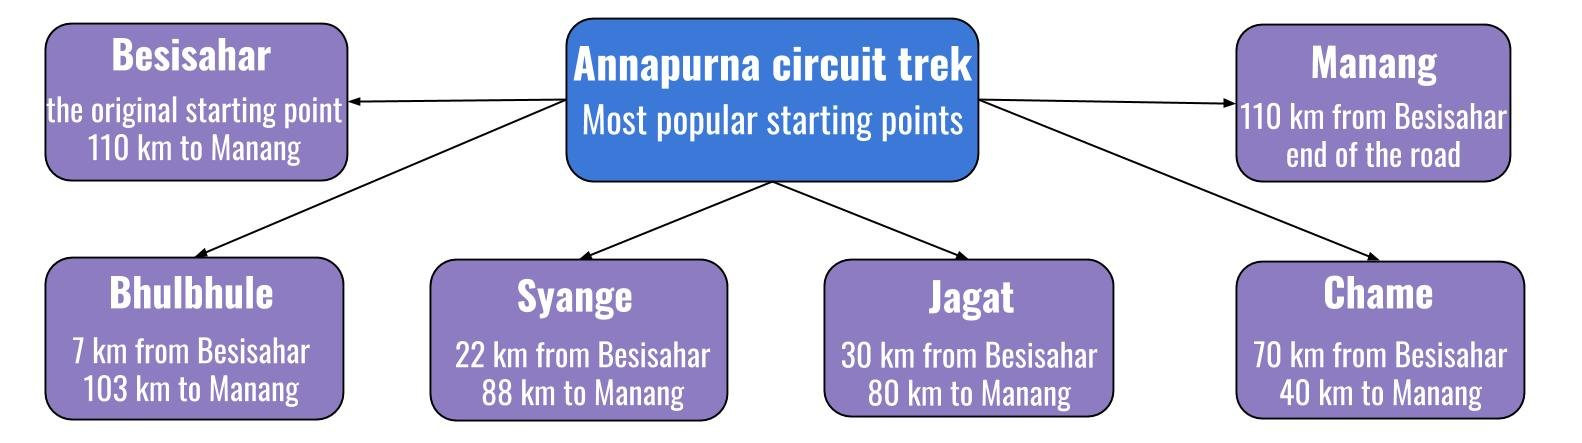 Where to start the Annapurna Circuit